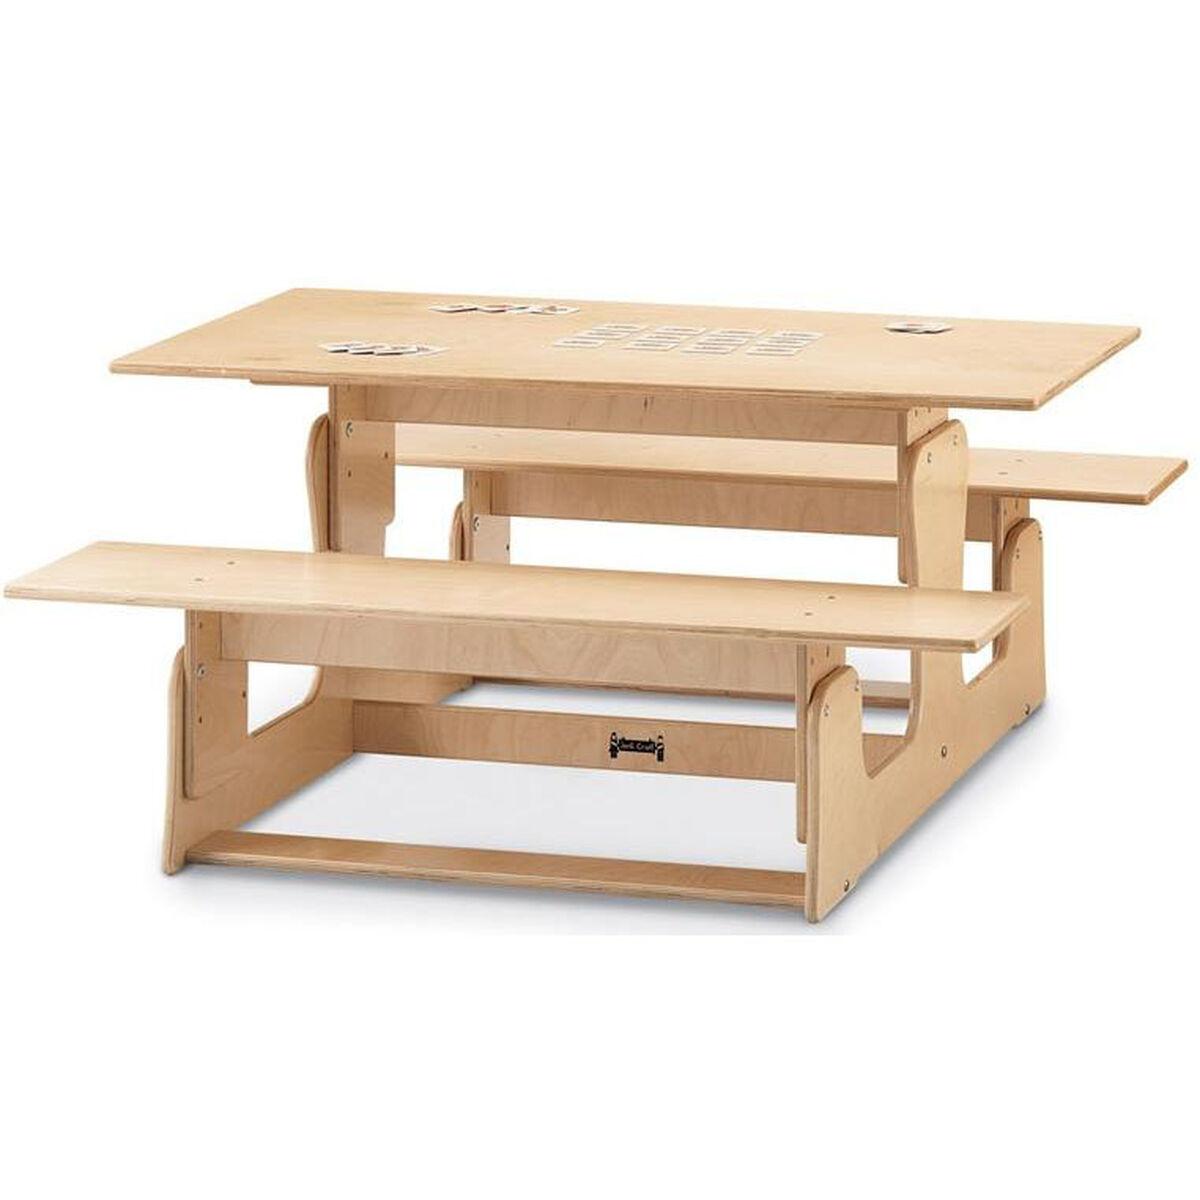 Adjustable picnic table and bench 3820jc schoolfurniture4less our indoor height adjustable picnic table and bench is on sale now watchthetrailerfo